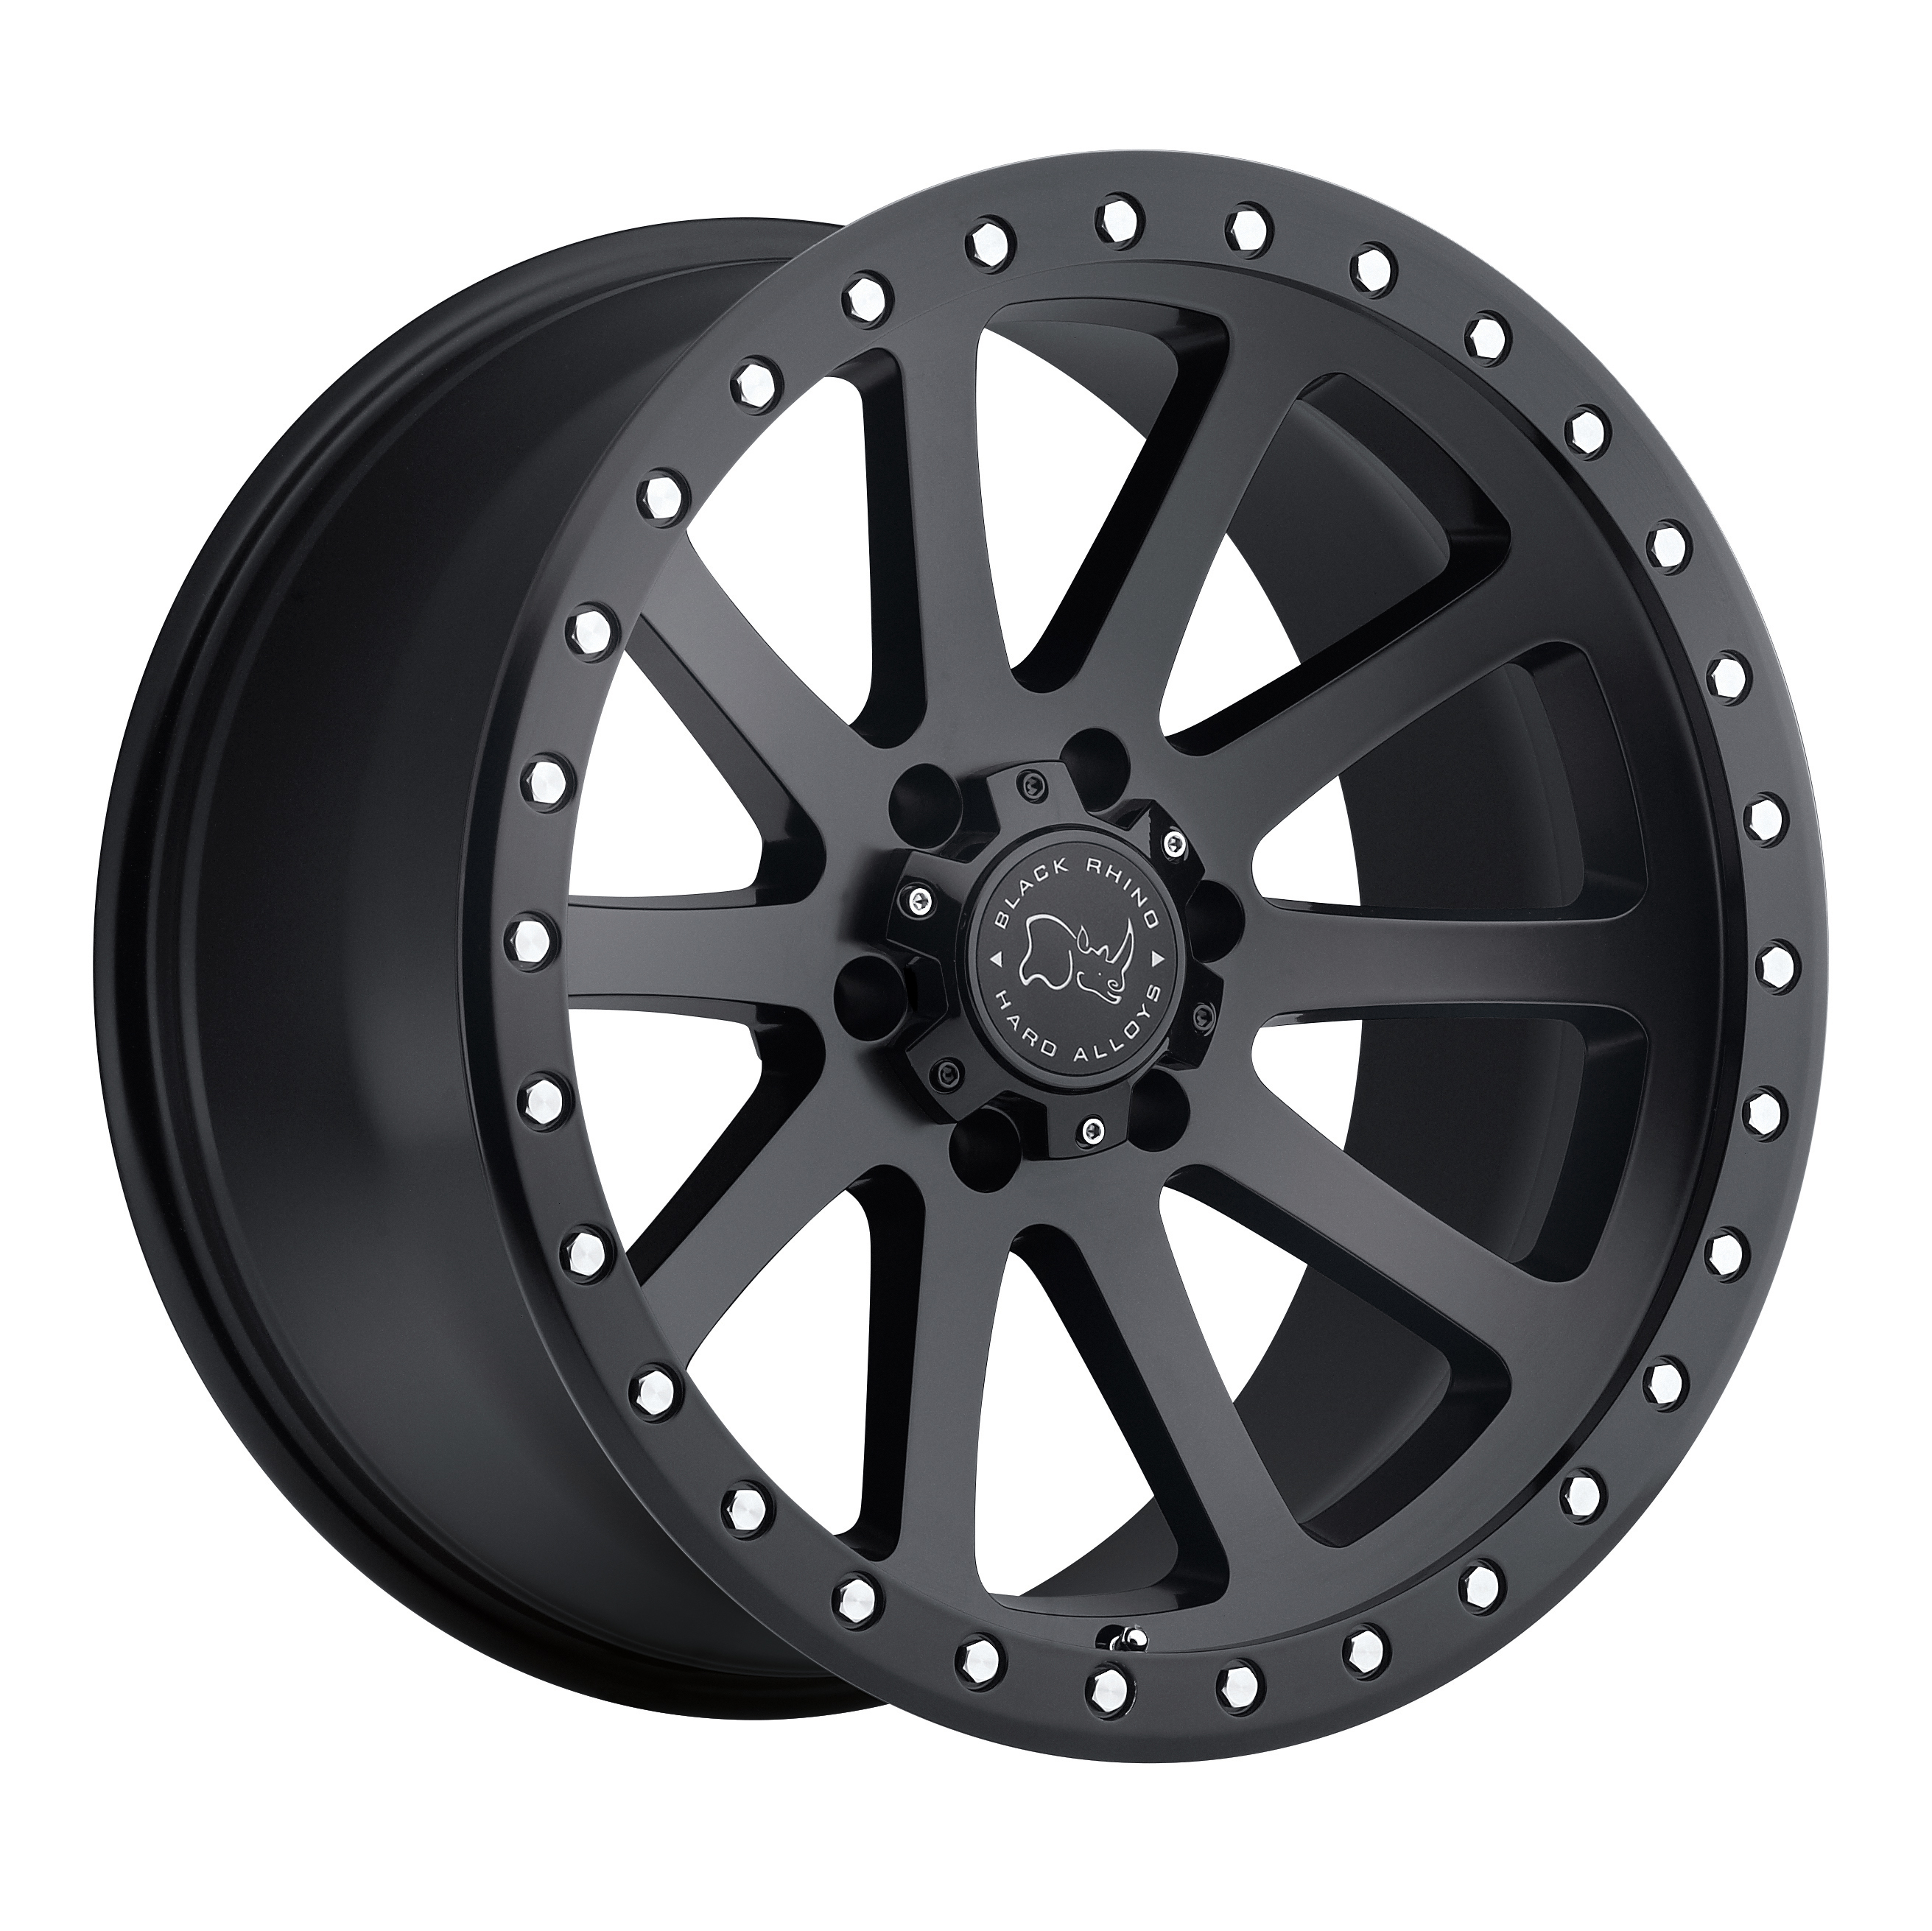 Mint Truck Rims By Black Rhino Jeep Wrangler With Fuel Wheels